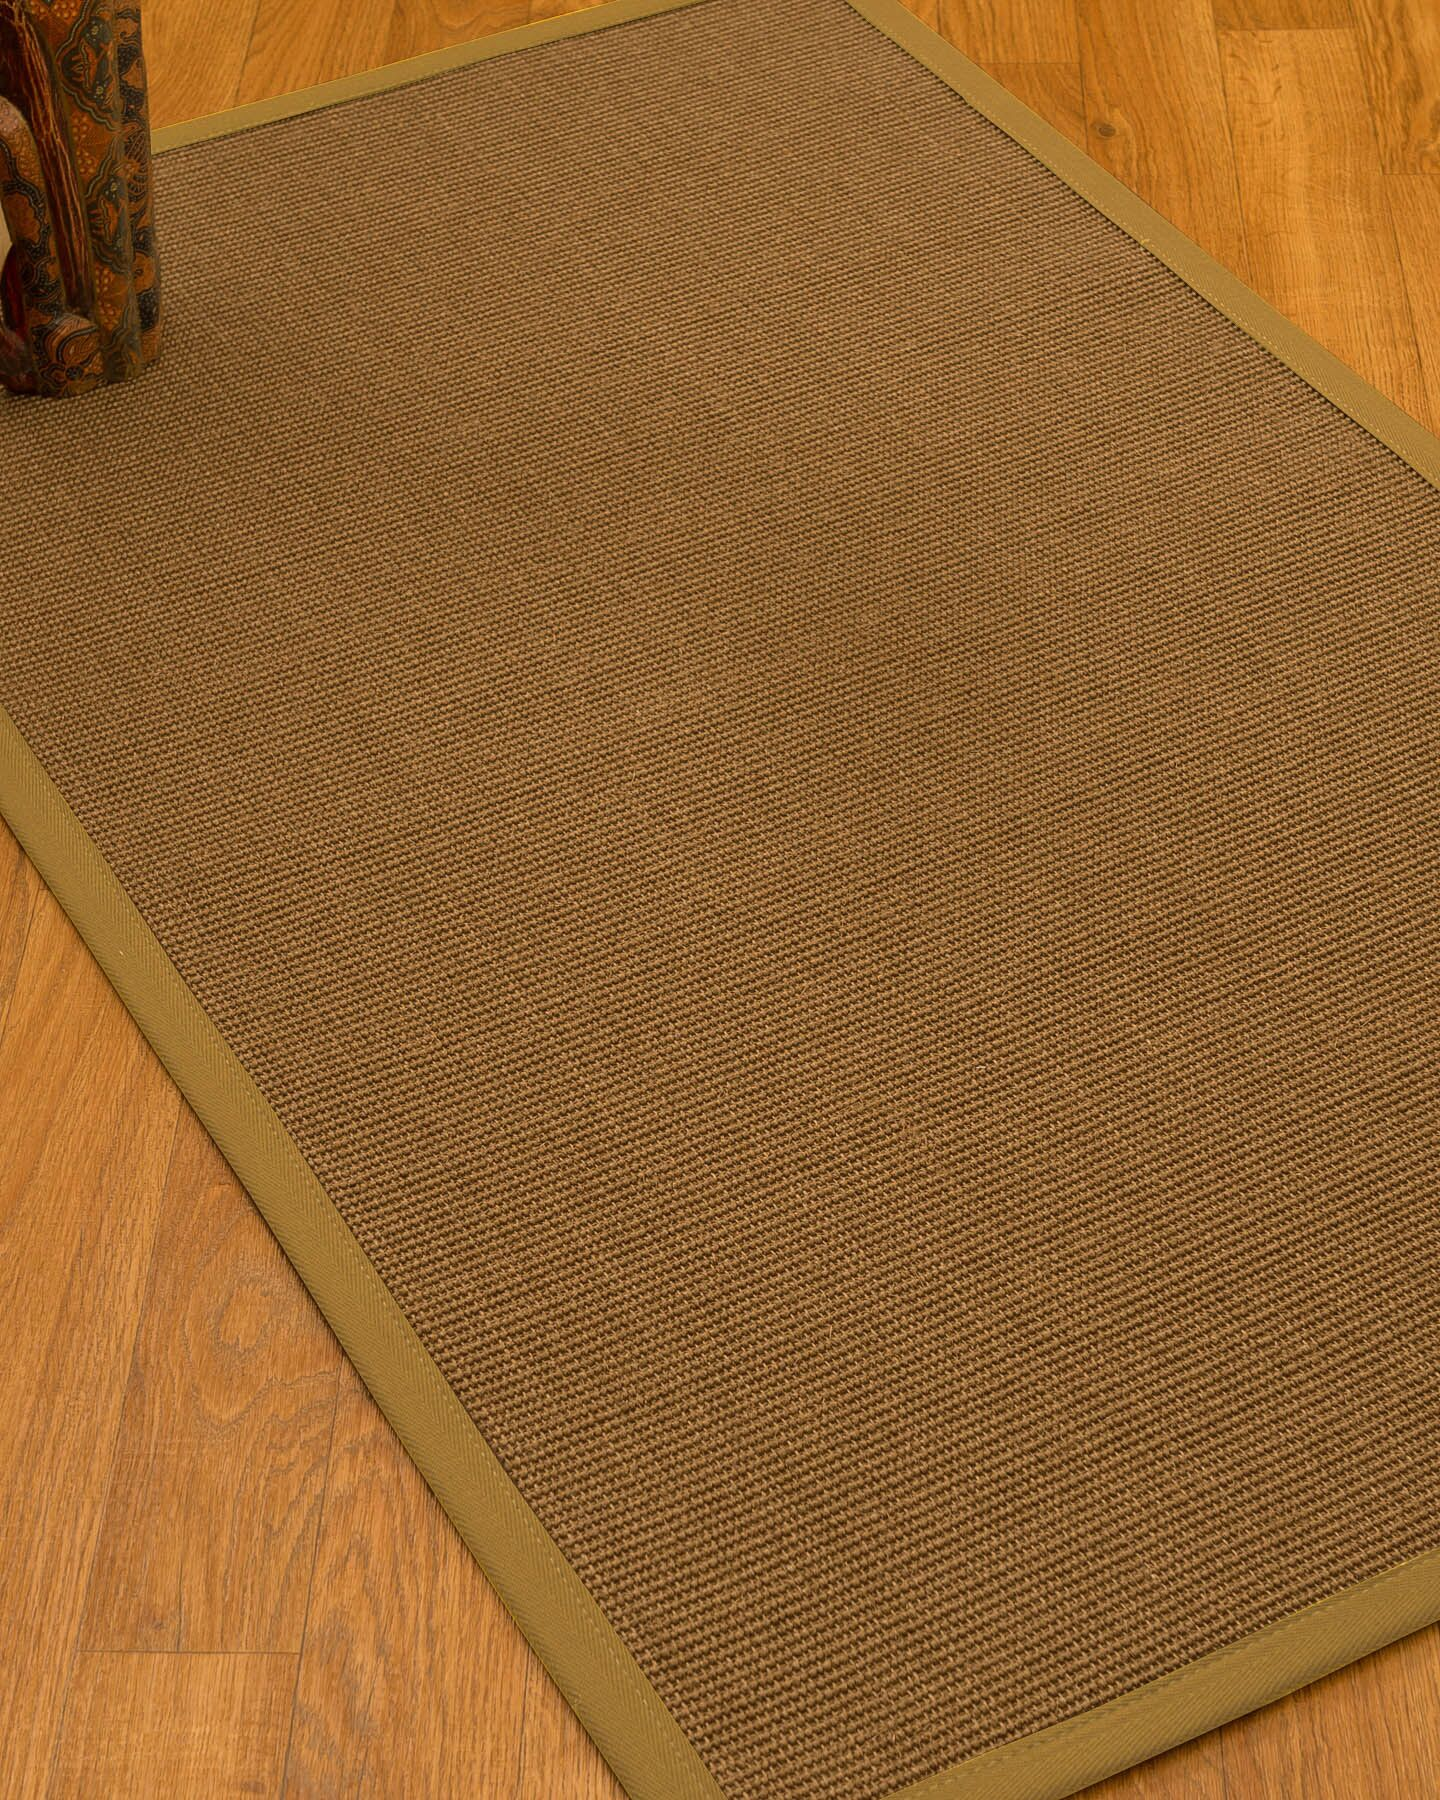 Huntwood Border Hand-Woven Brown/Sage Area Rug Rug Size: Rectangle 4' x 6', Rug Pad Included: Yes